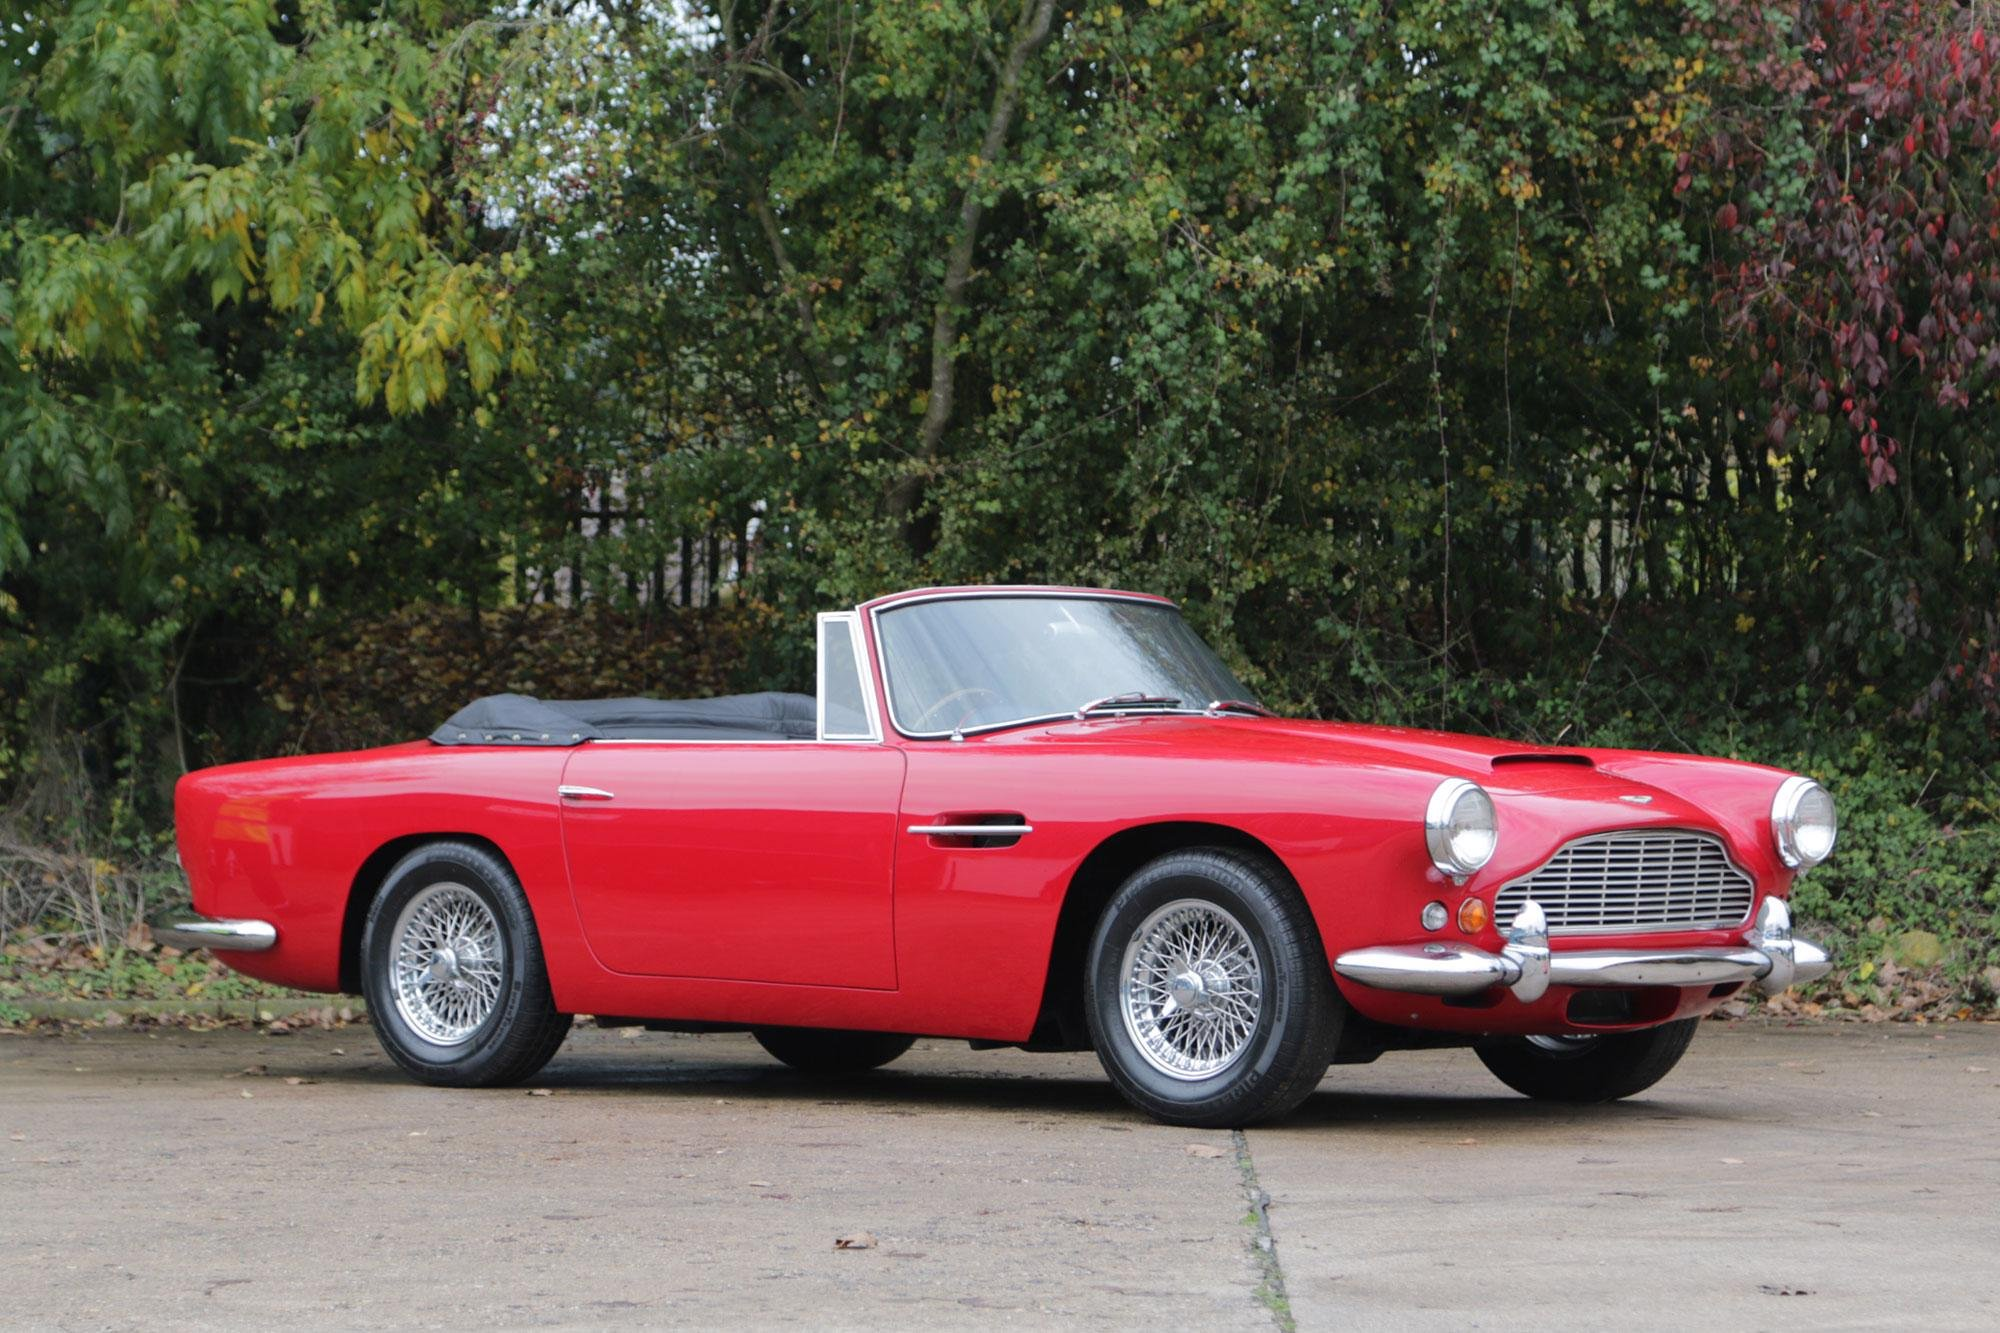 1963 Aston Martin Db4 Convertible Series V Ss 1 Of 14 Right Hand Drive Series V Cars Produced With Ss Engine Oldtimer Zu Verkaufen